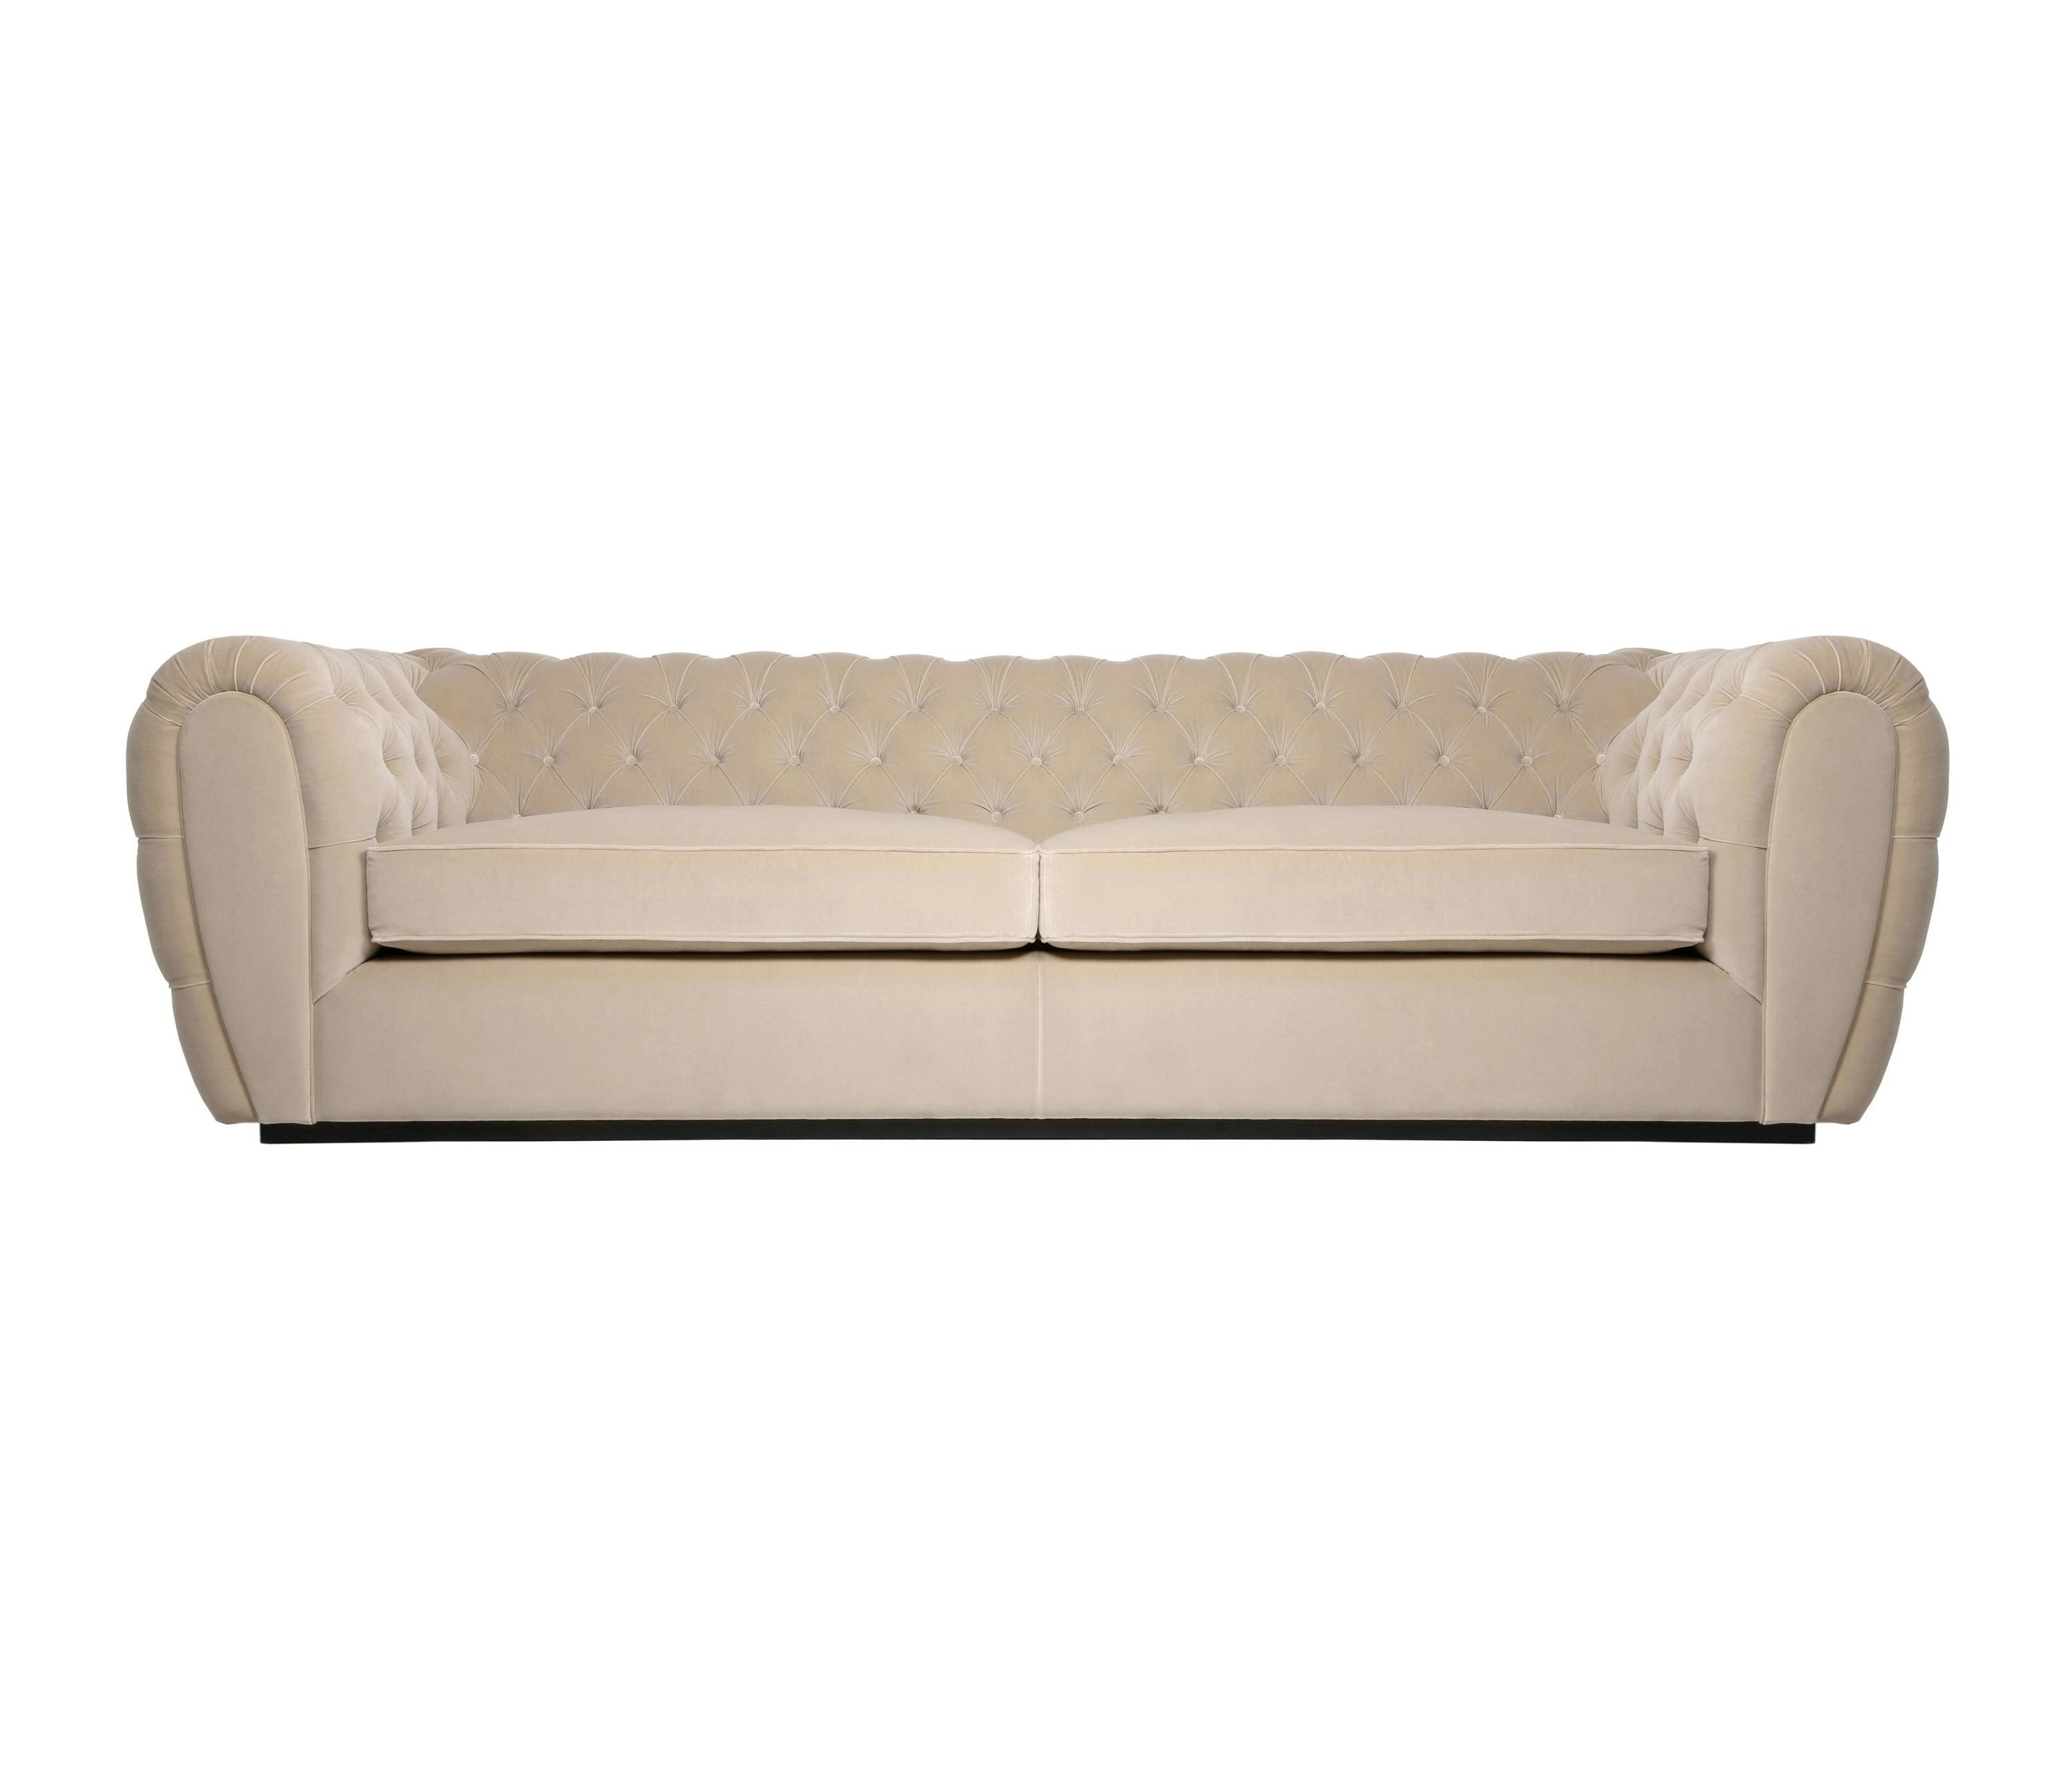 Windsor Sofa - Lounge Sofas From The Sofa & Chair Company Ltd with regard to Windsor Sofas (Image 22 of 30)